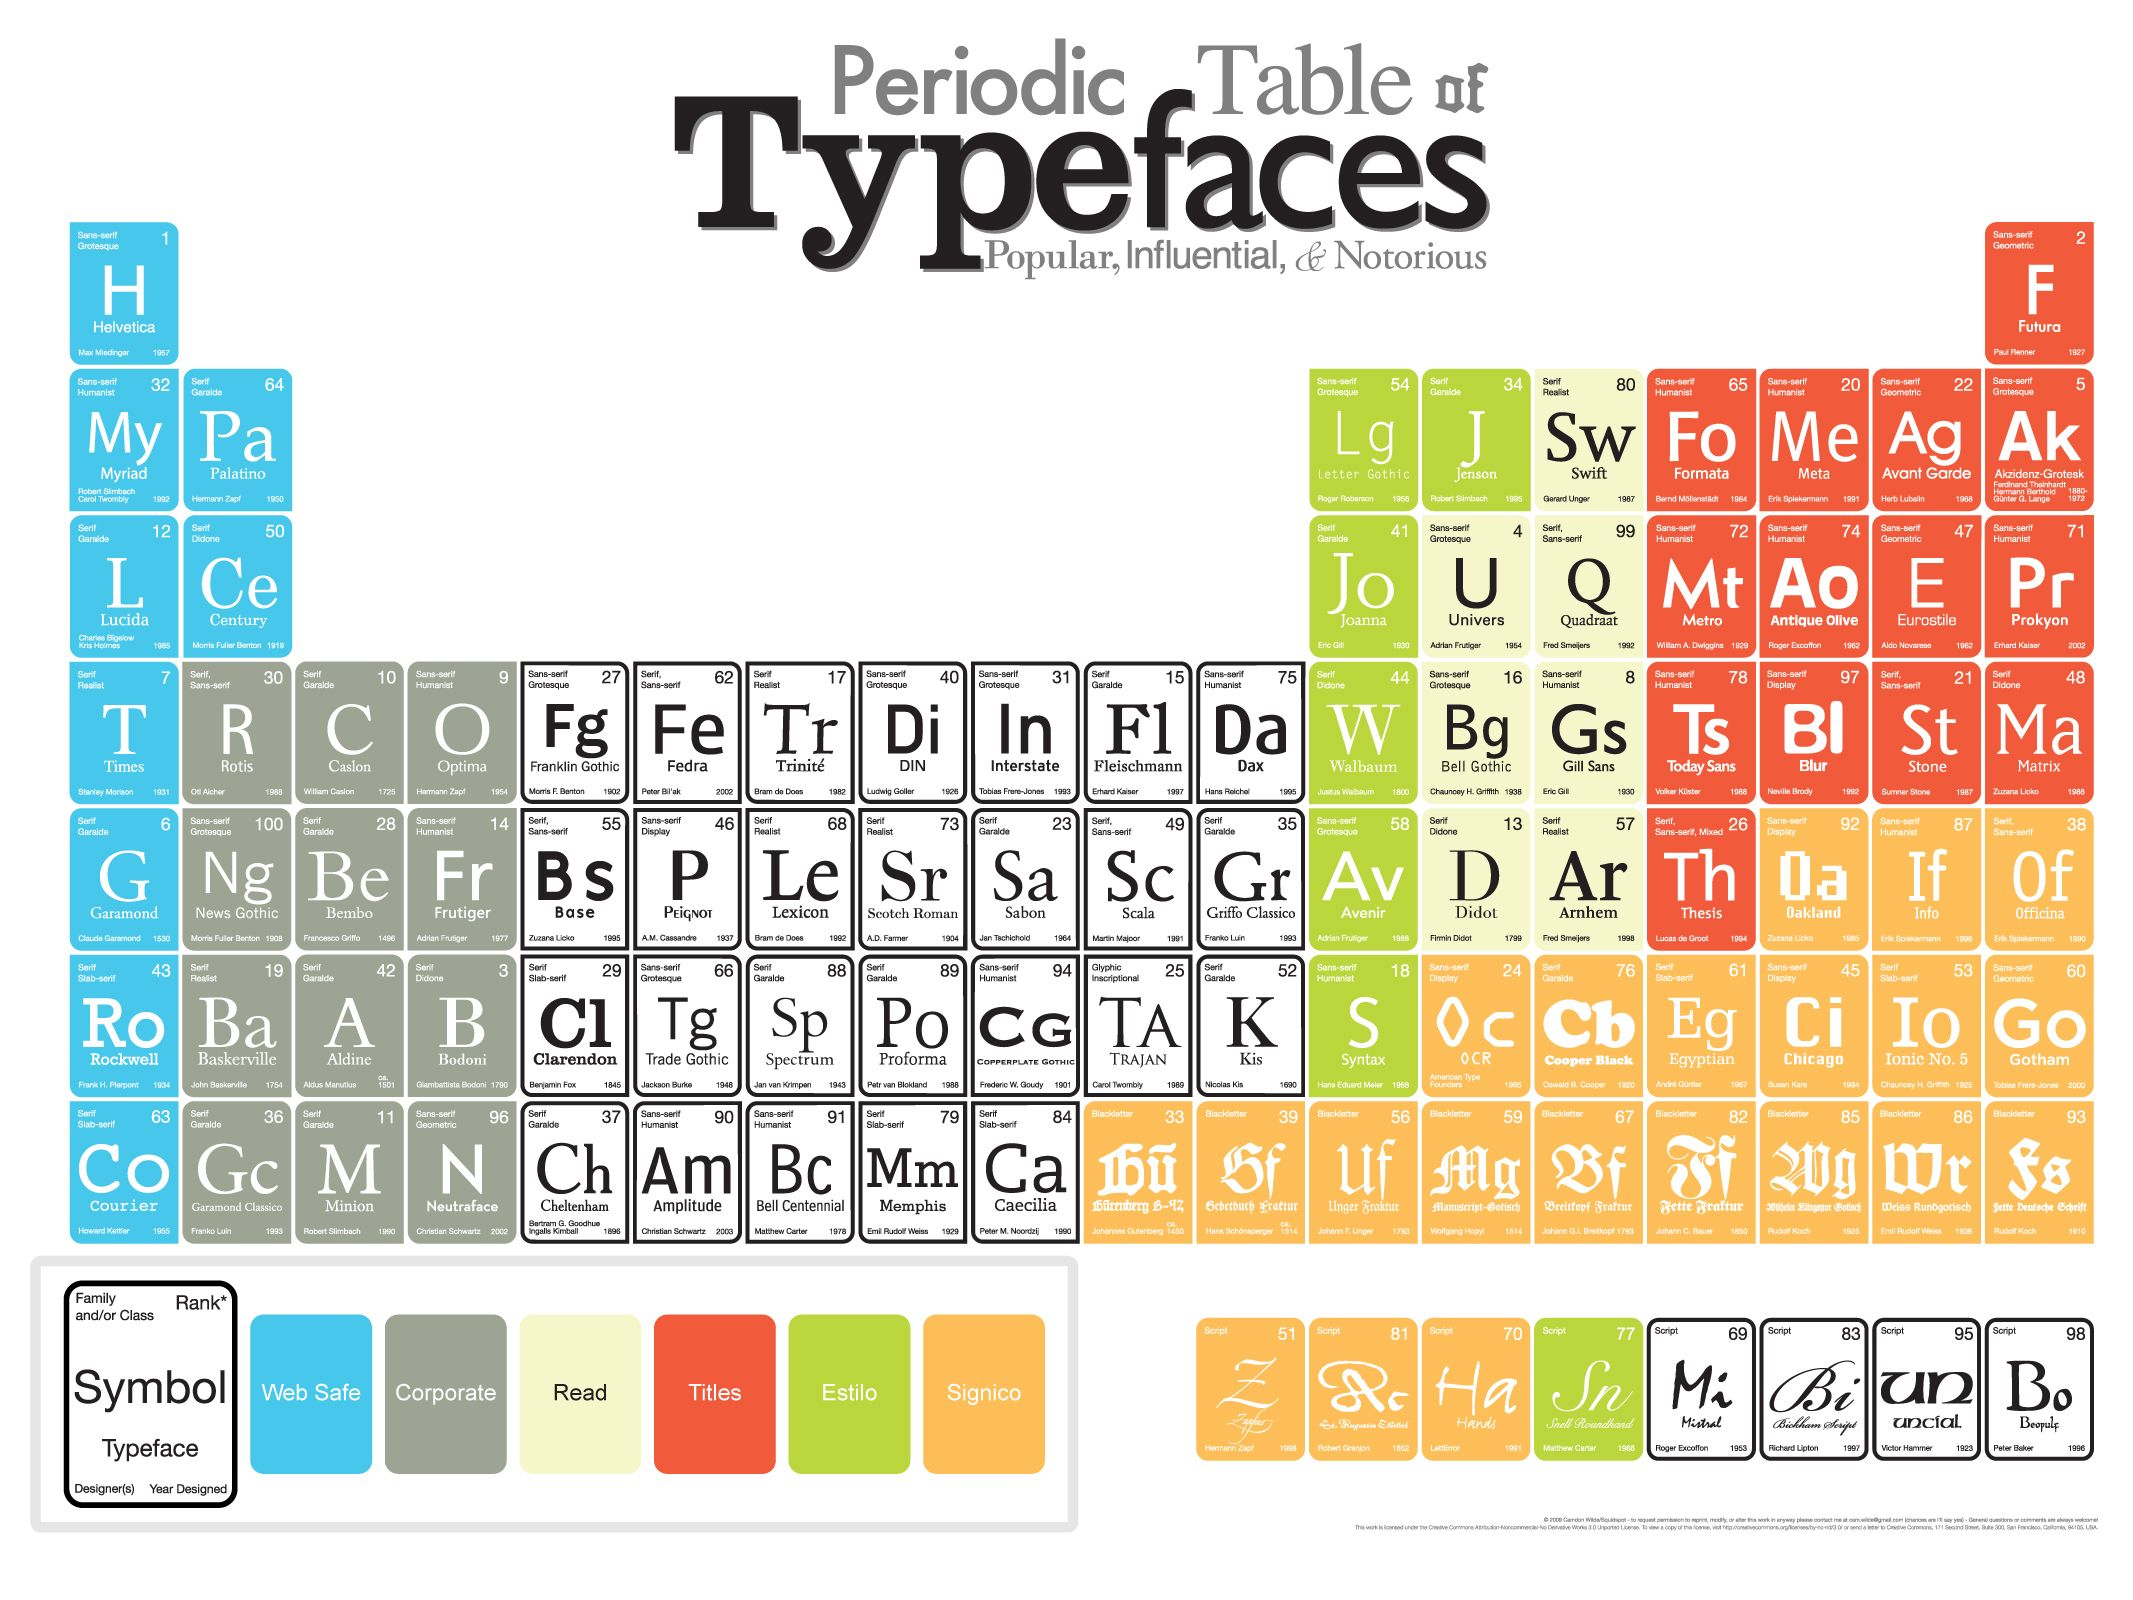 Tabla peridica tipogrfica segn su funcionalidad infografas periodic table of typefaces bespoke social media marketing urtaz Images